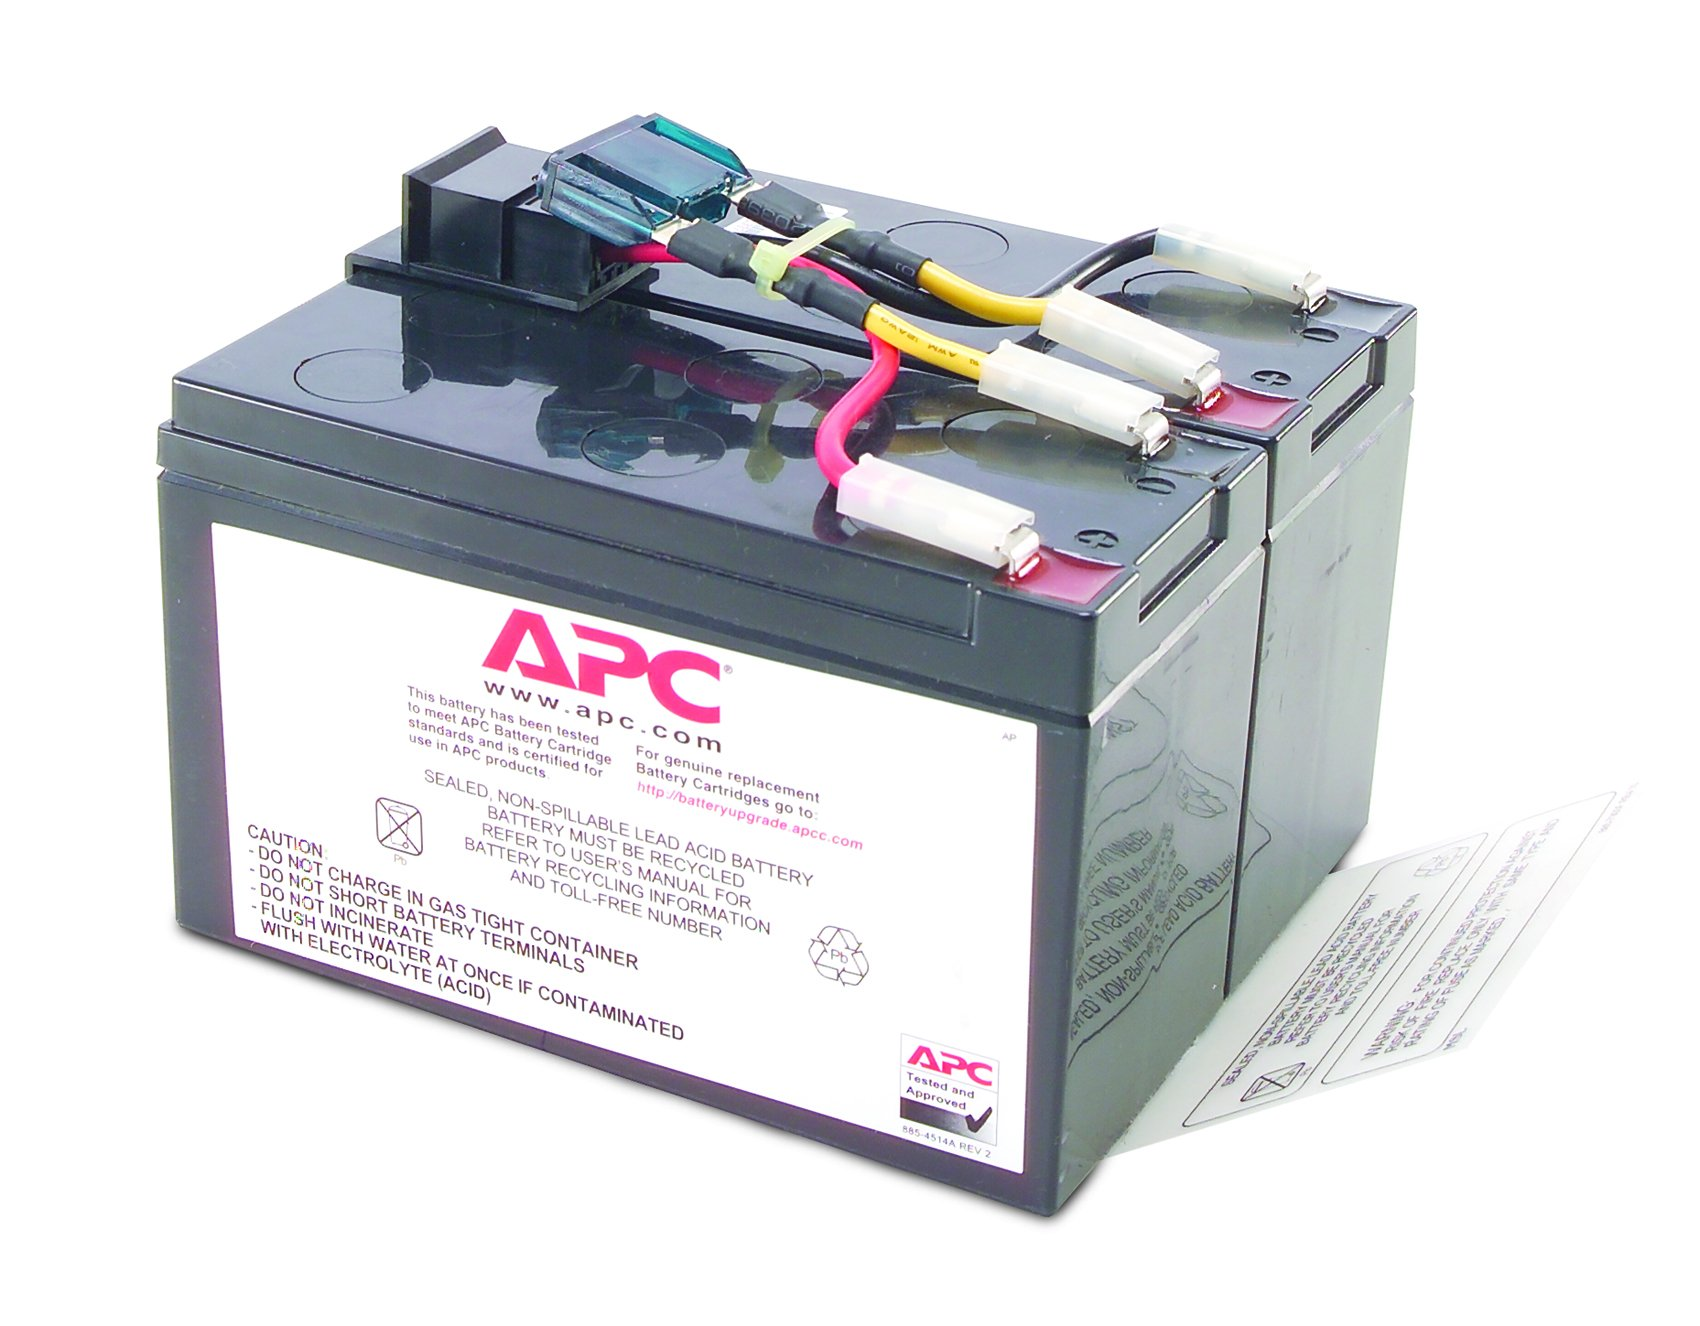 APC UPS Replacement Battery Cartridge for APC UPS Models SMT750, SUA750 and select others (RBC48) by APC